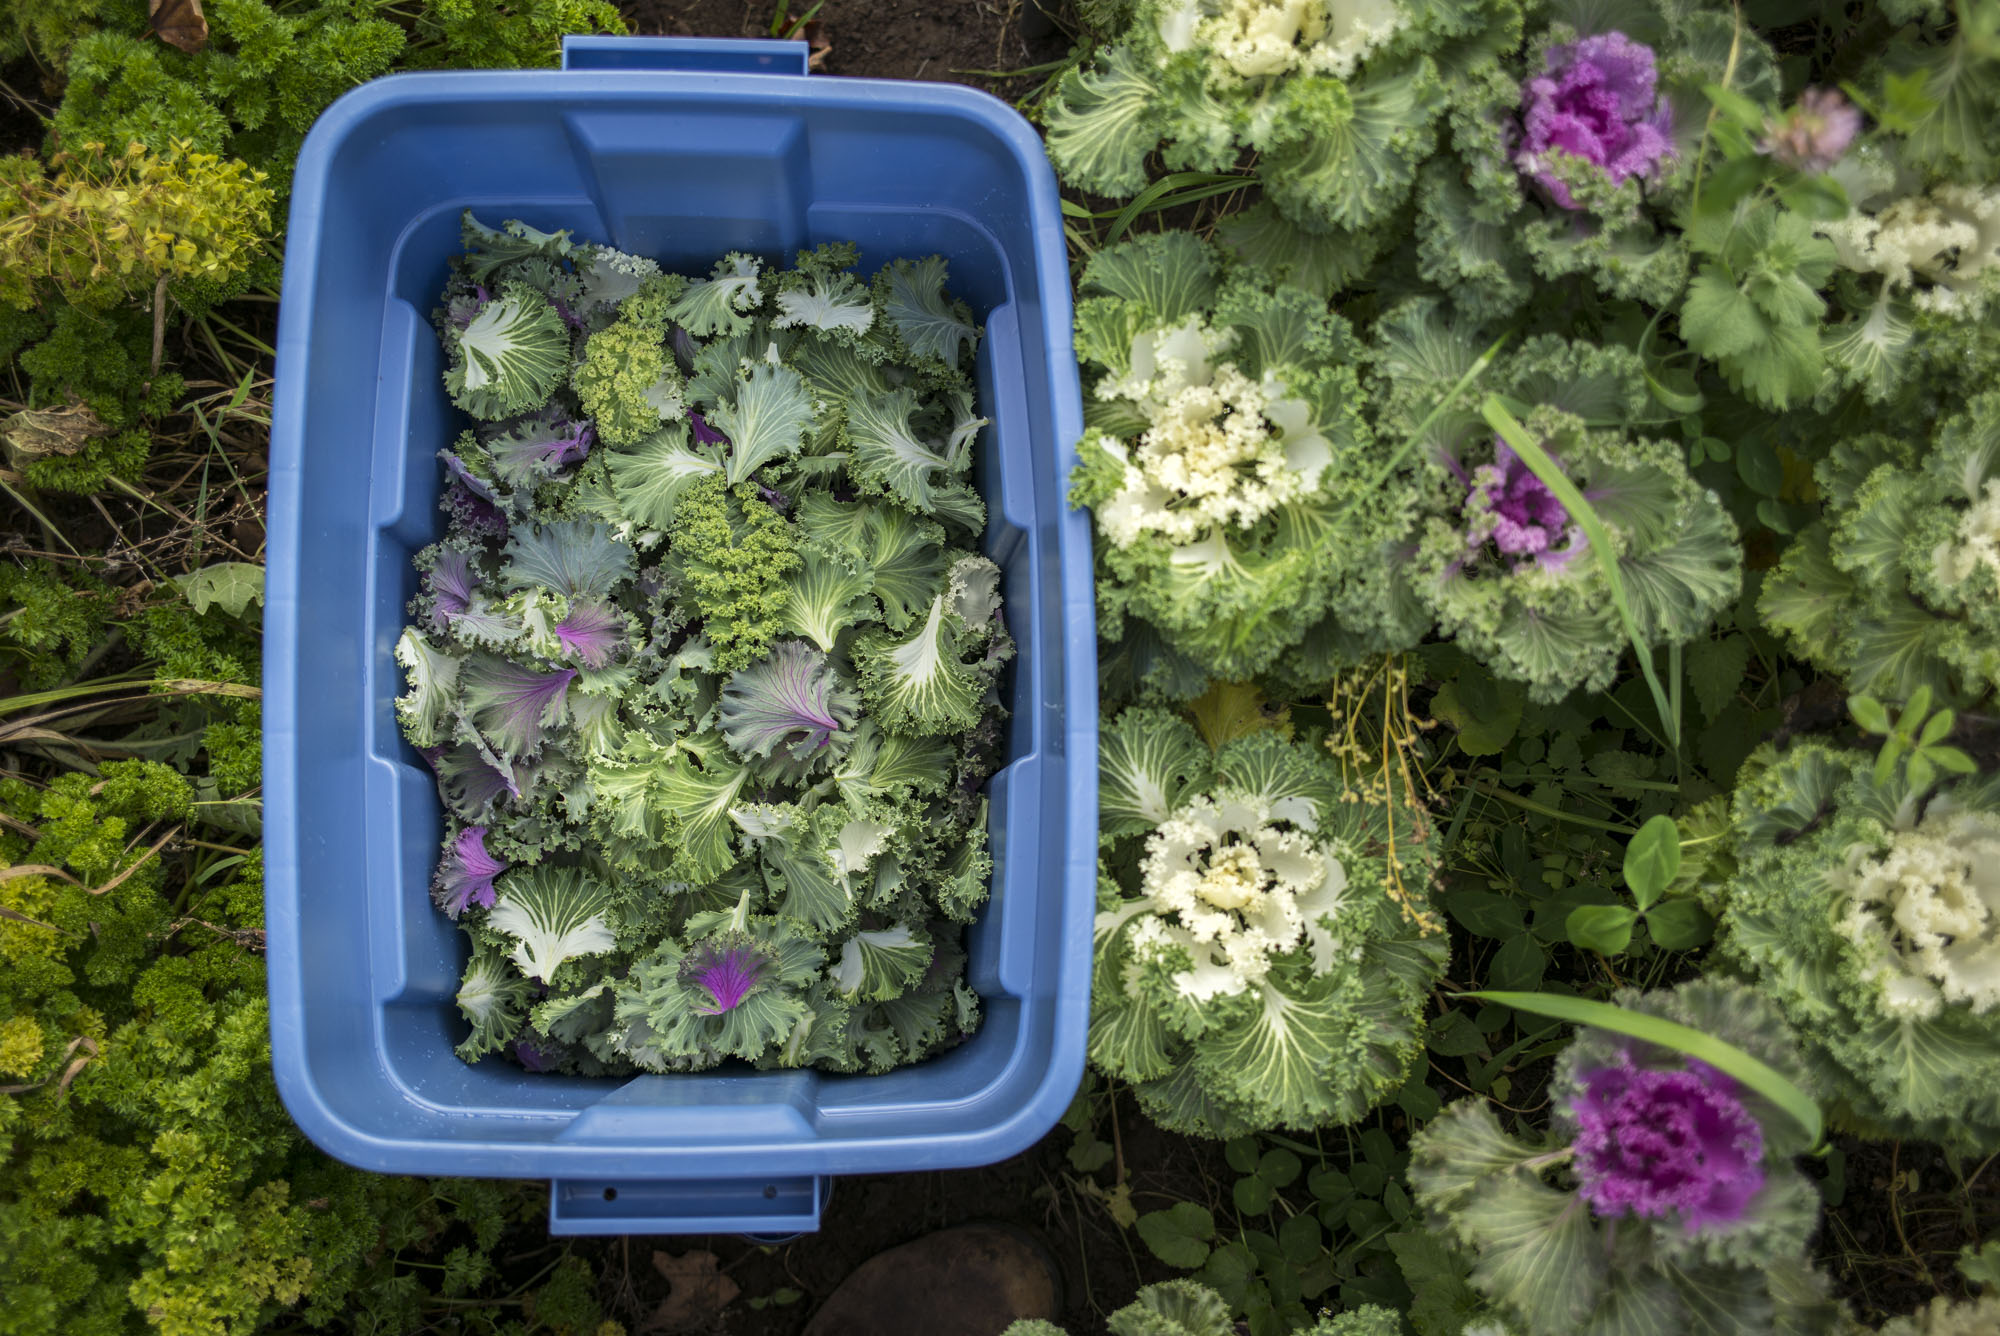 Greens are collected in tubs, which are refrigerated, before salad packaging begins for their buyers.